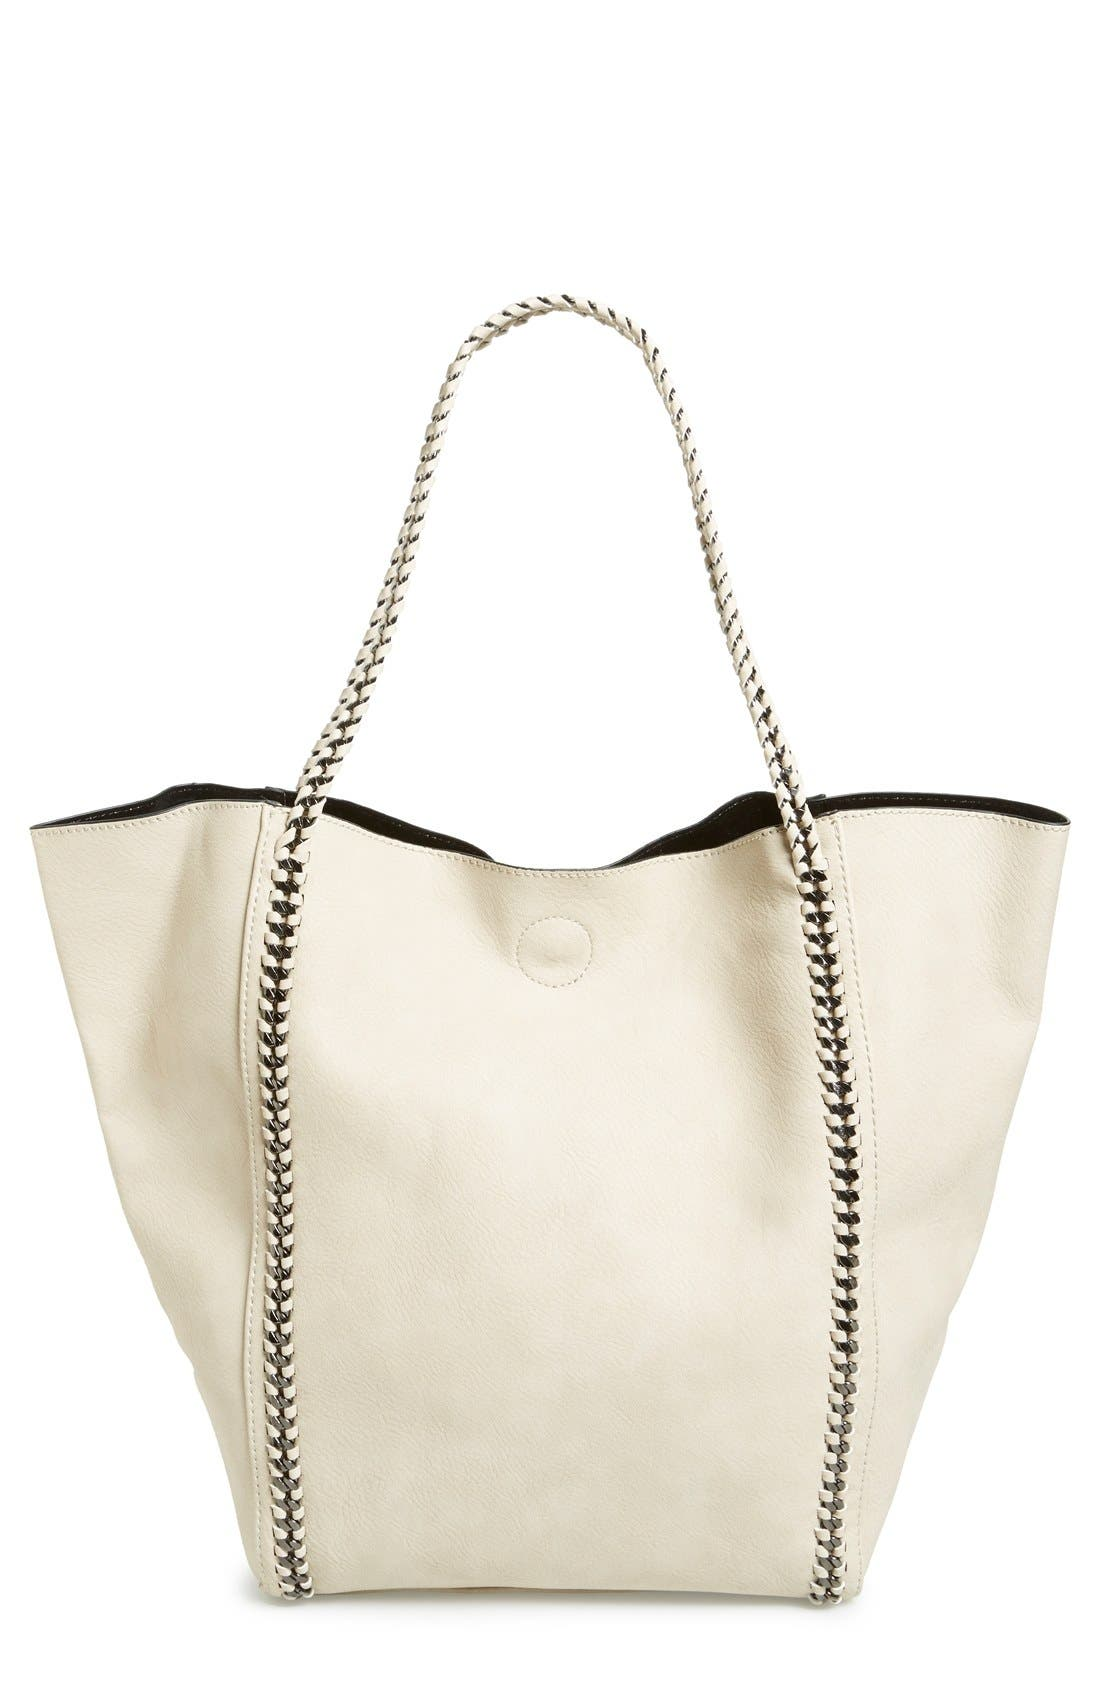 Main Image - Phase 3 Chain Faux Leather Tote